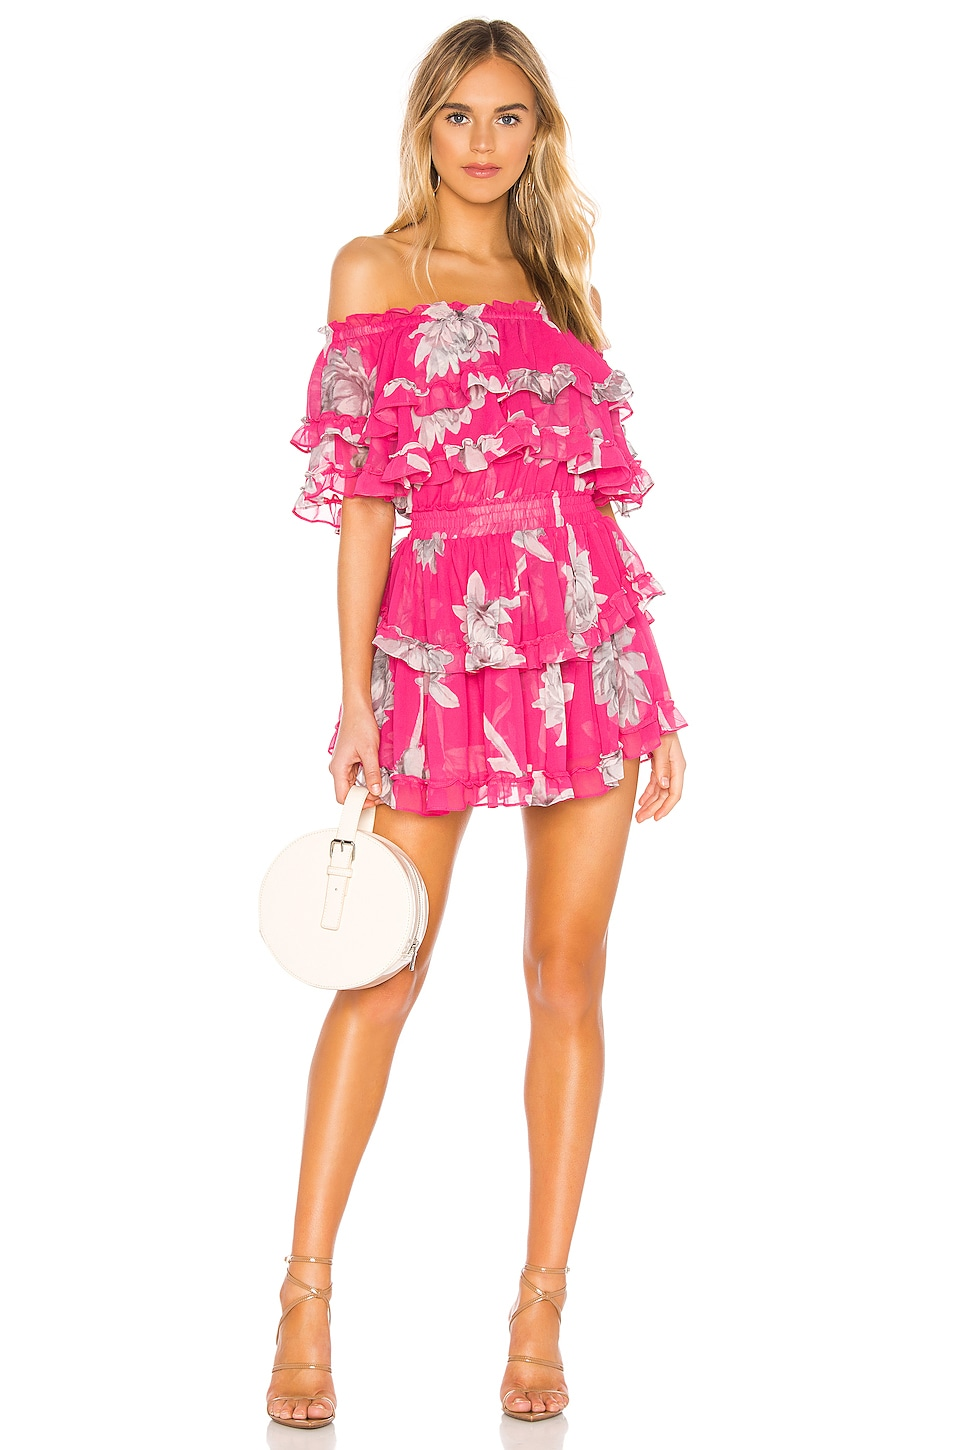 MISA Los Angeles X REVOLVE Isella Dress in Fuchsia Floral